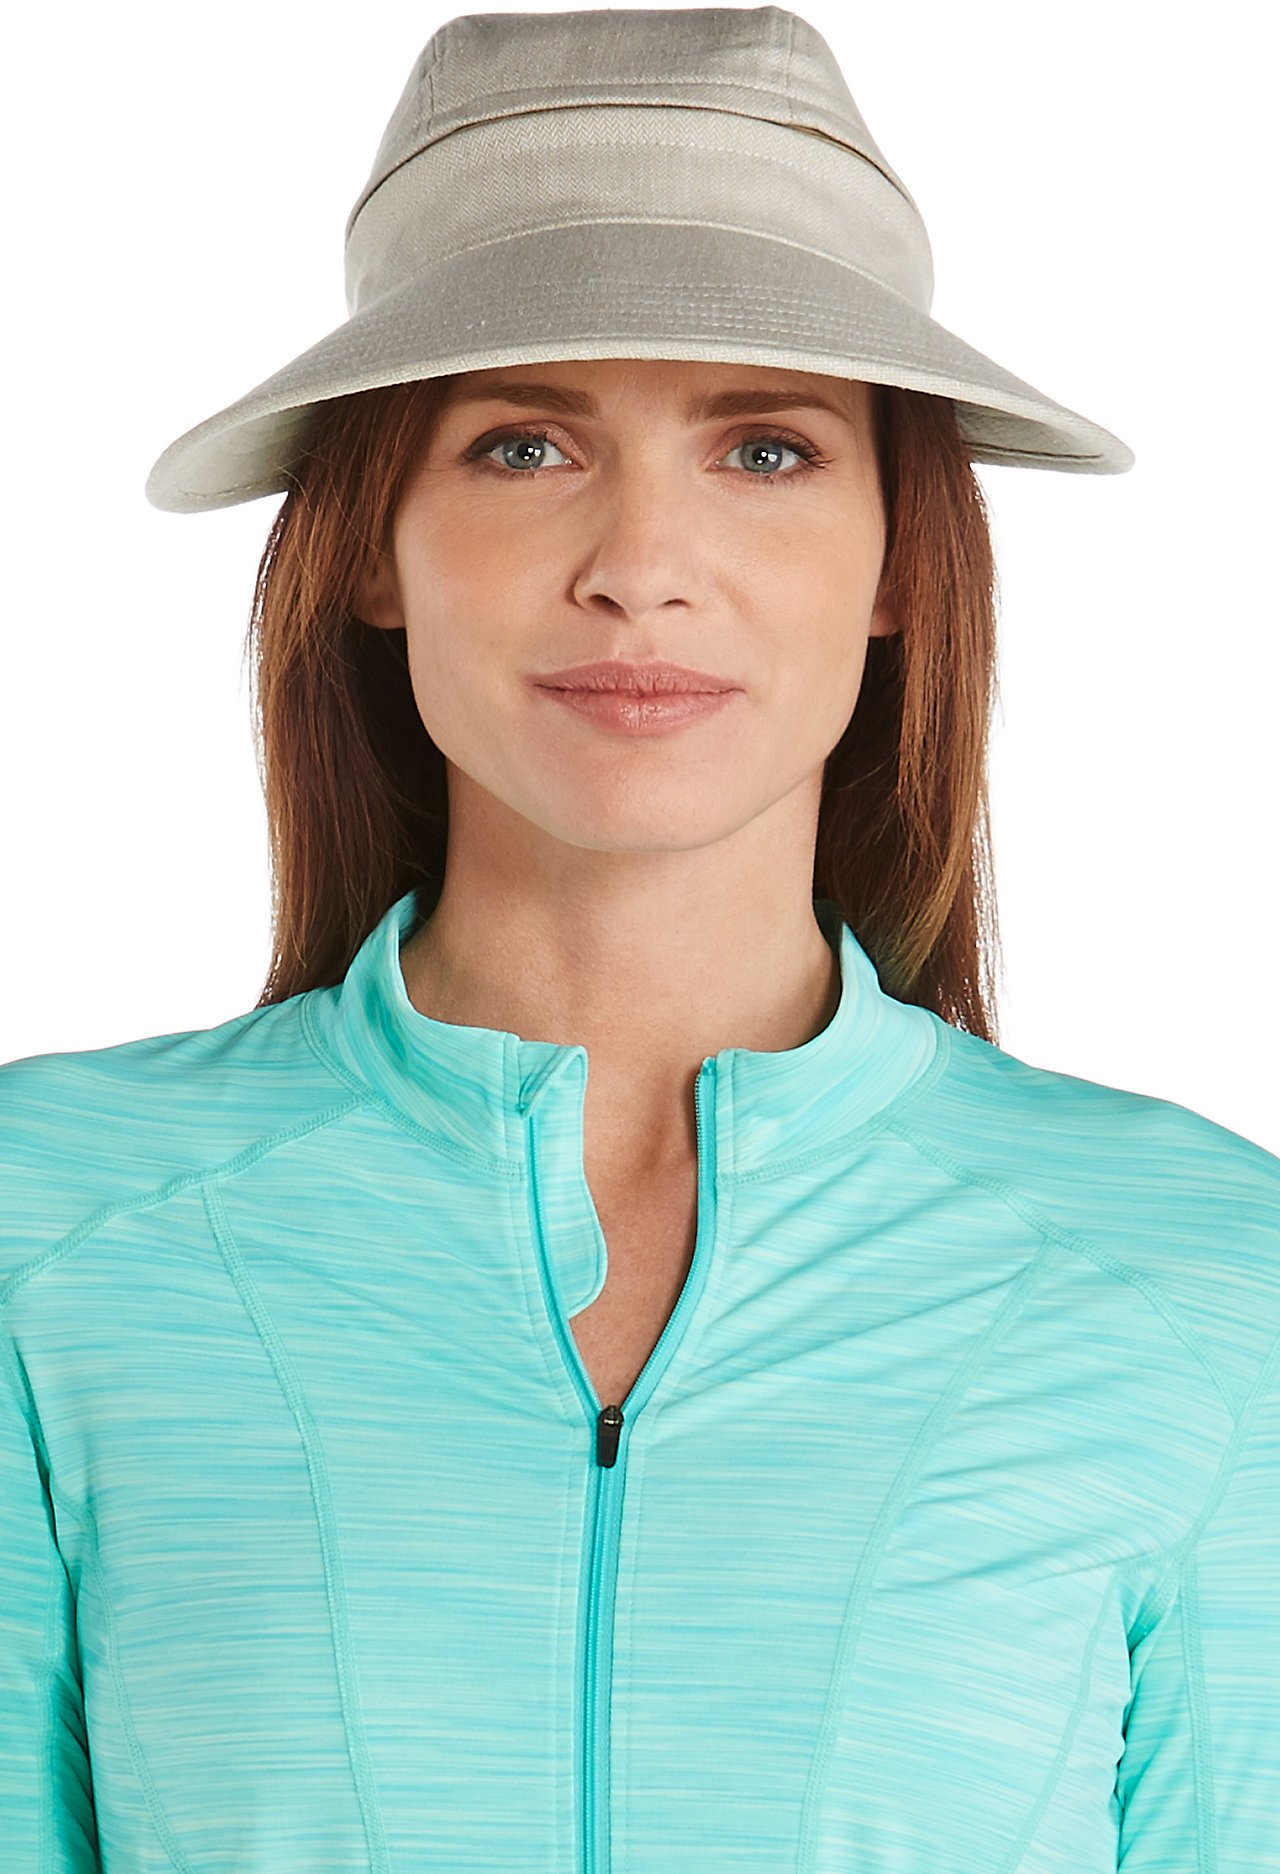 Coolibar UPF 50+ Women's Bel Aire Zip-Off Sun Visor - Sun Protective (One Size- Natural Herringbone) by Coolibar (Image #2)